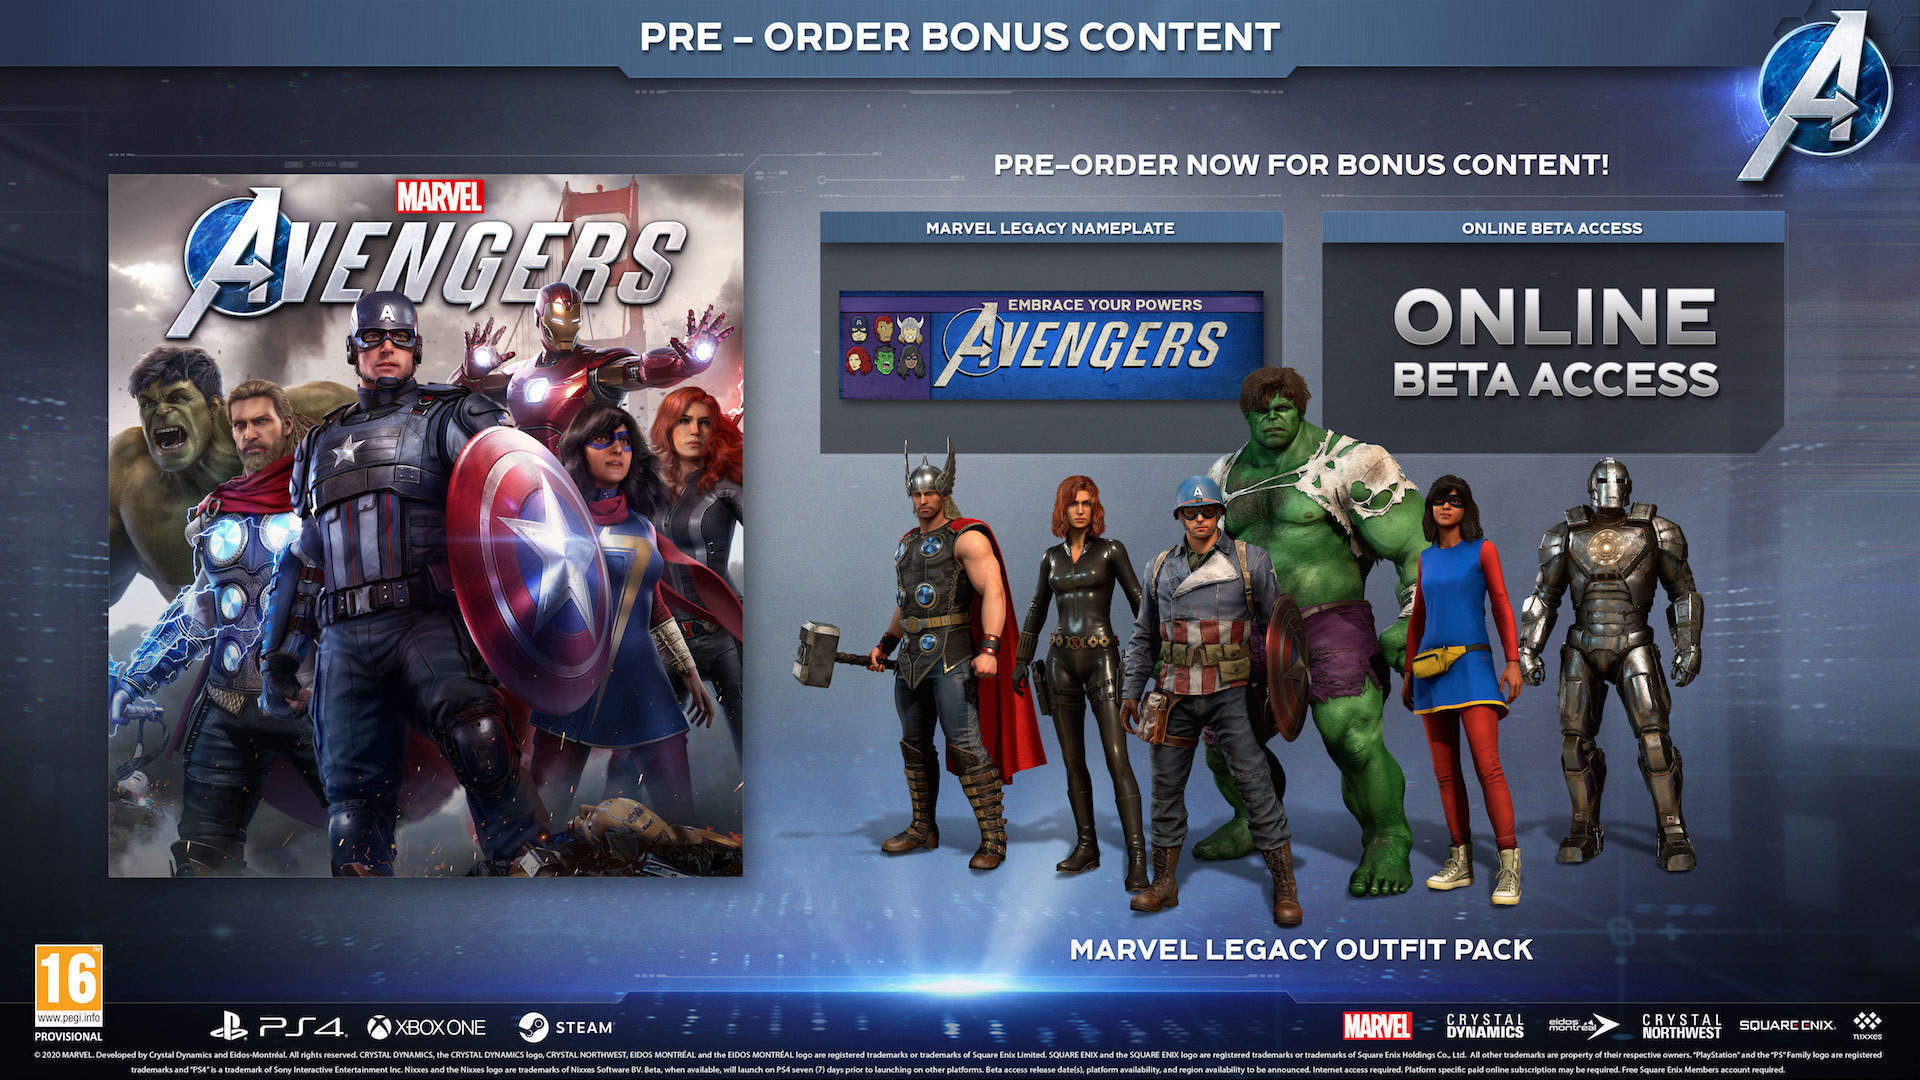 Marvels-Avengers-Pre-Order-Legacy-Outfit-Pack